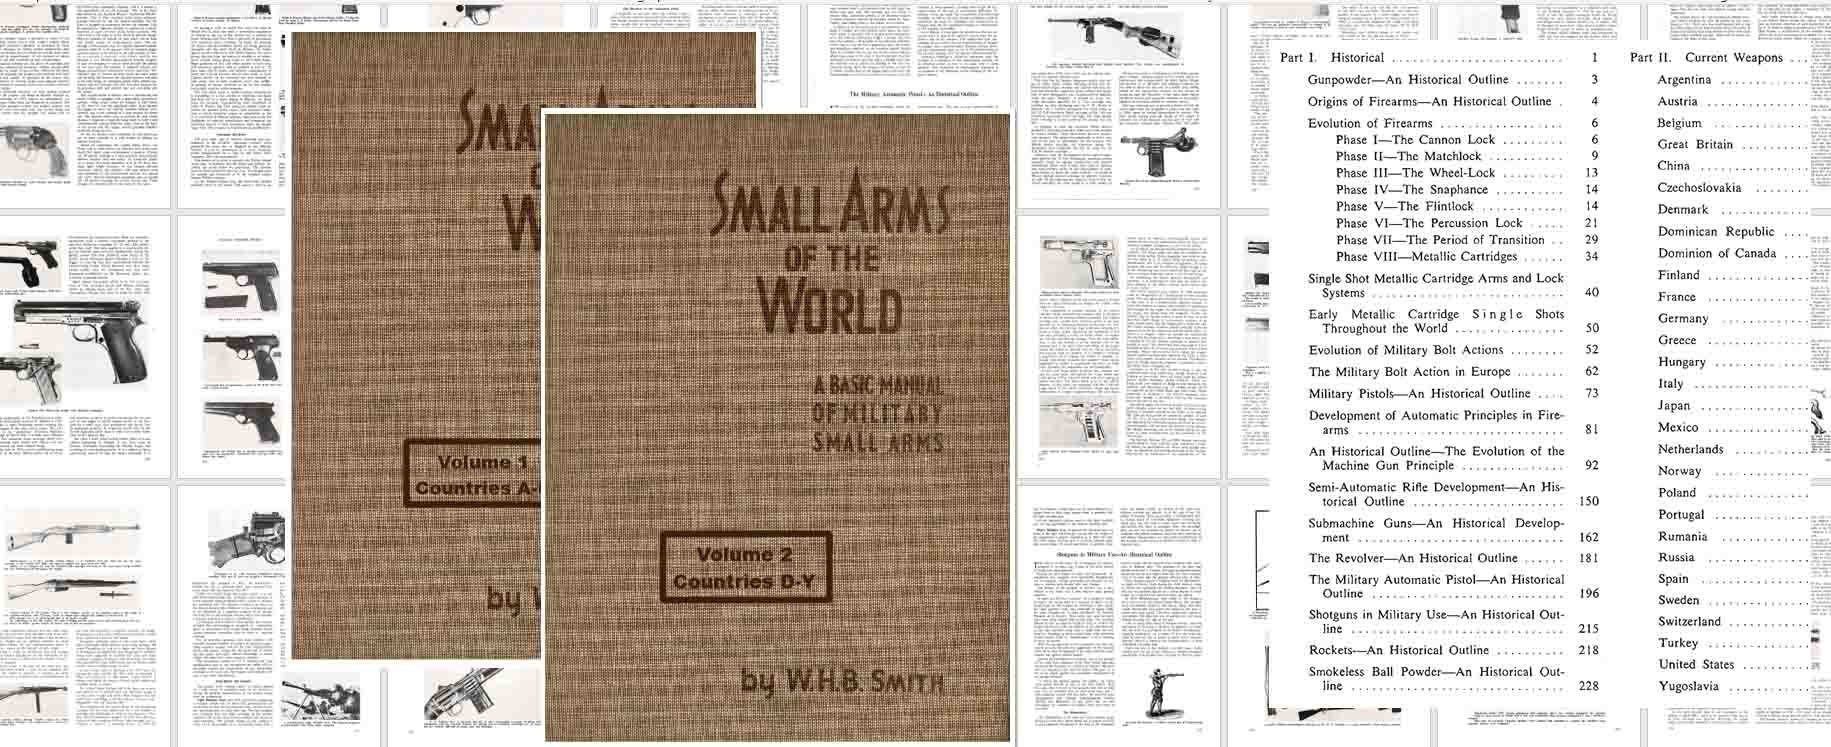 A Basic Manual of Military Small Arms 1957, Small Arms of the World